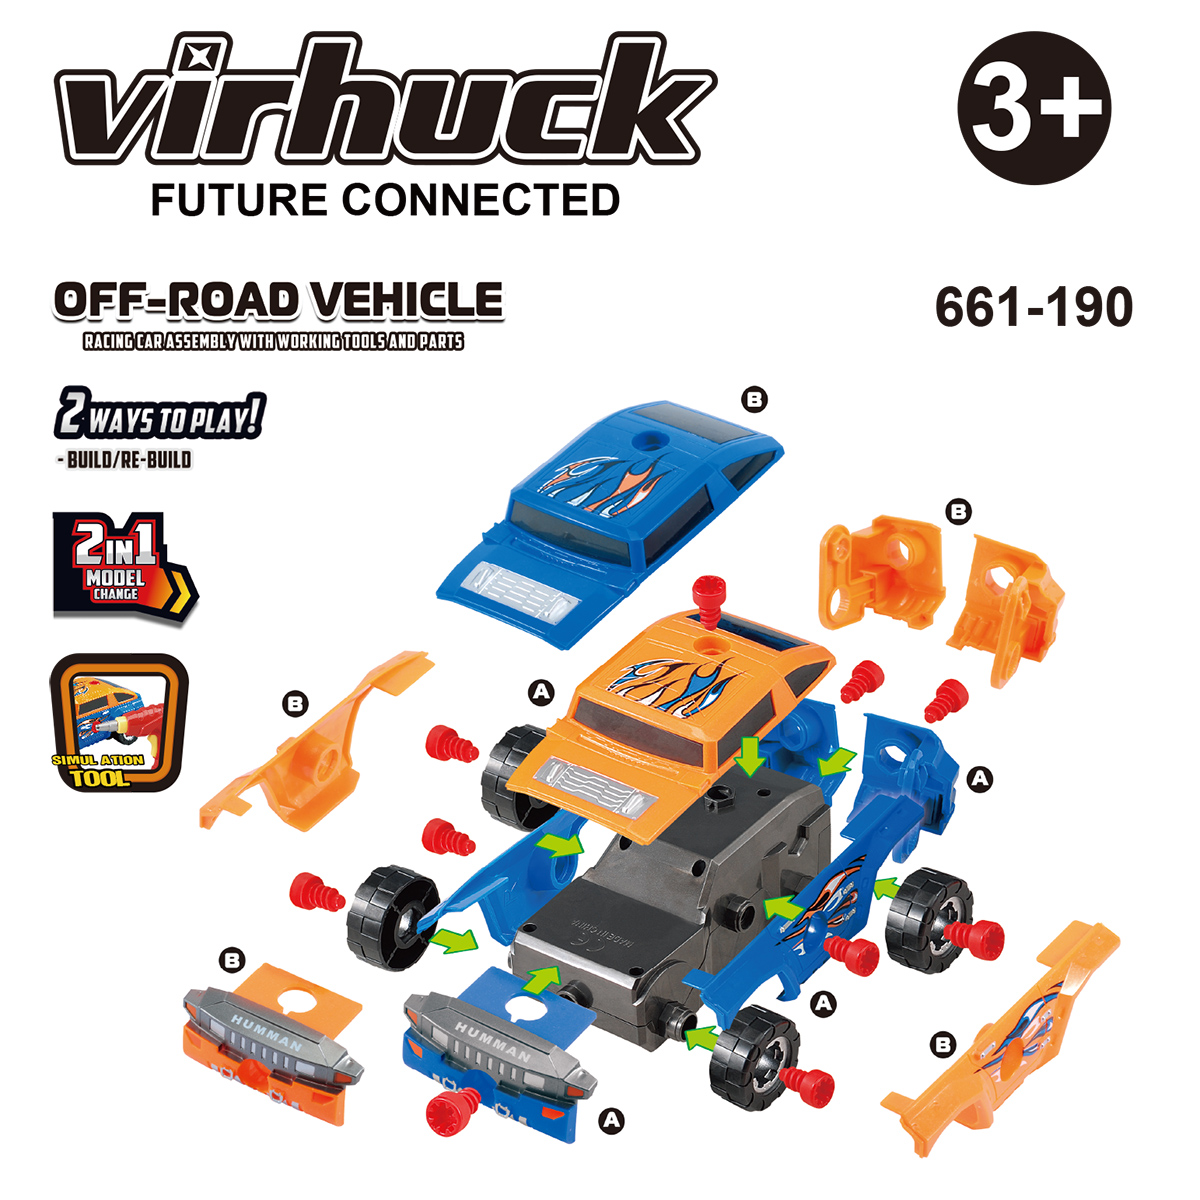 virhuck off-road vehicle Take-A-Part Toy car for Kids with 36 Take Apart Pieces,electric Tool Drill STEM Education Car for Kids Educational Toys